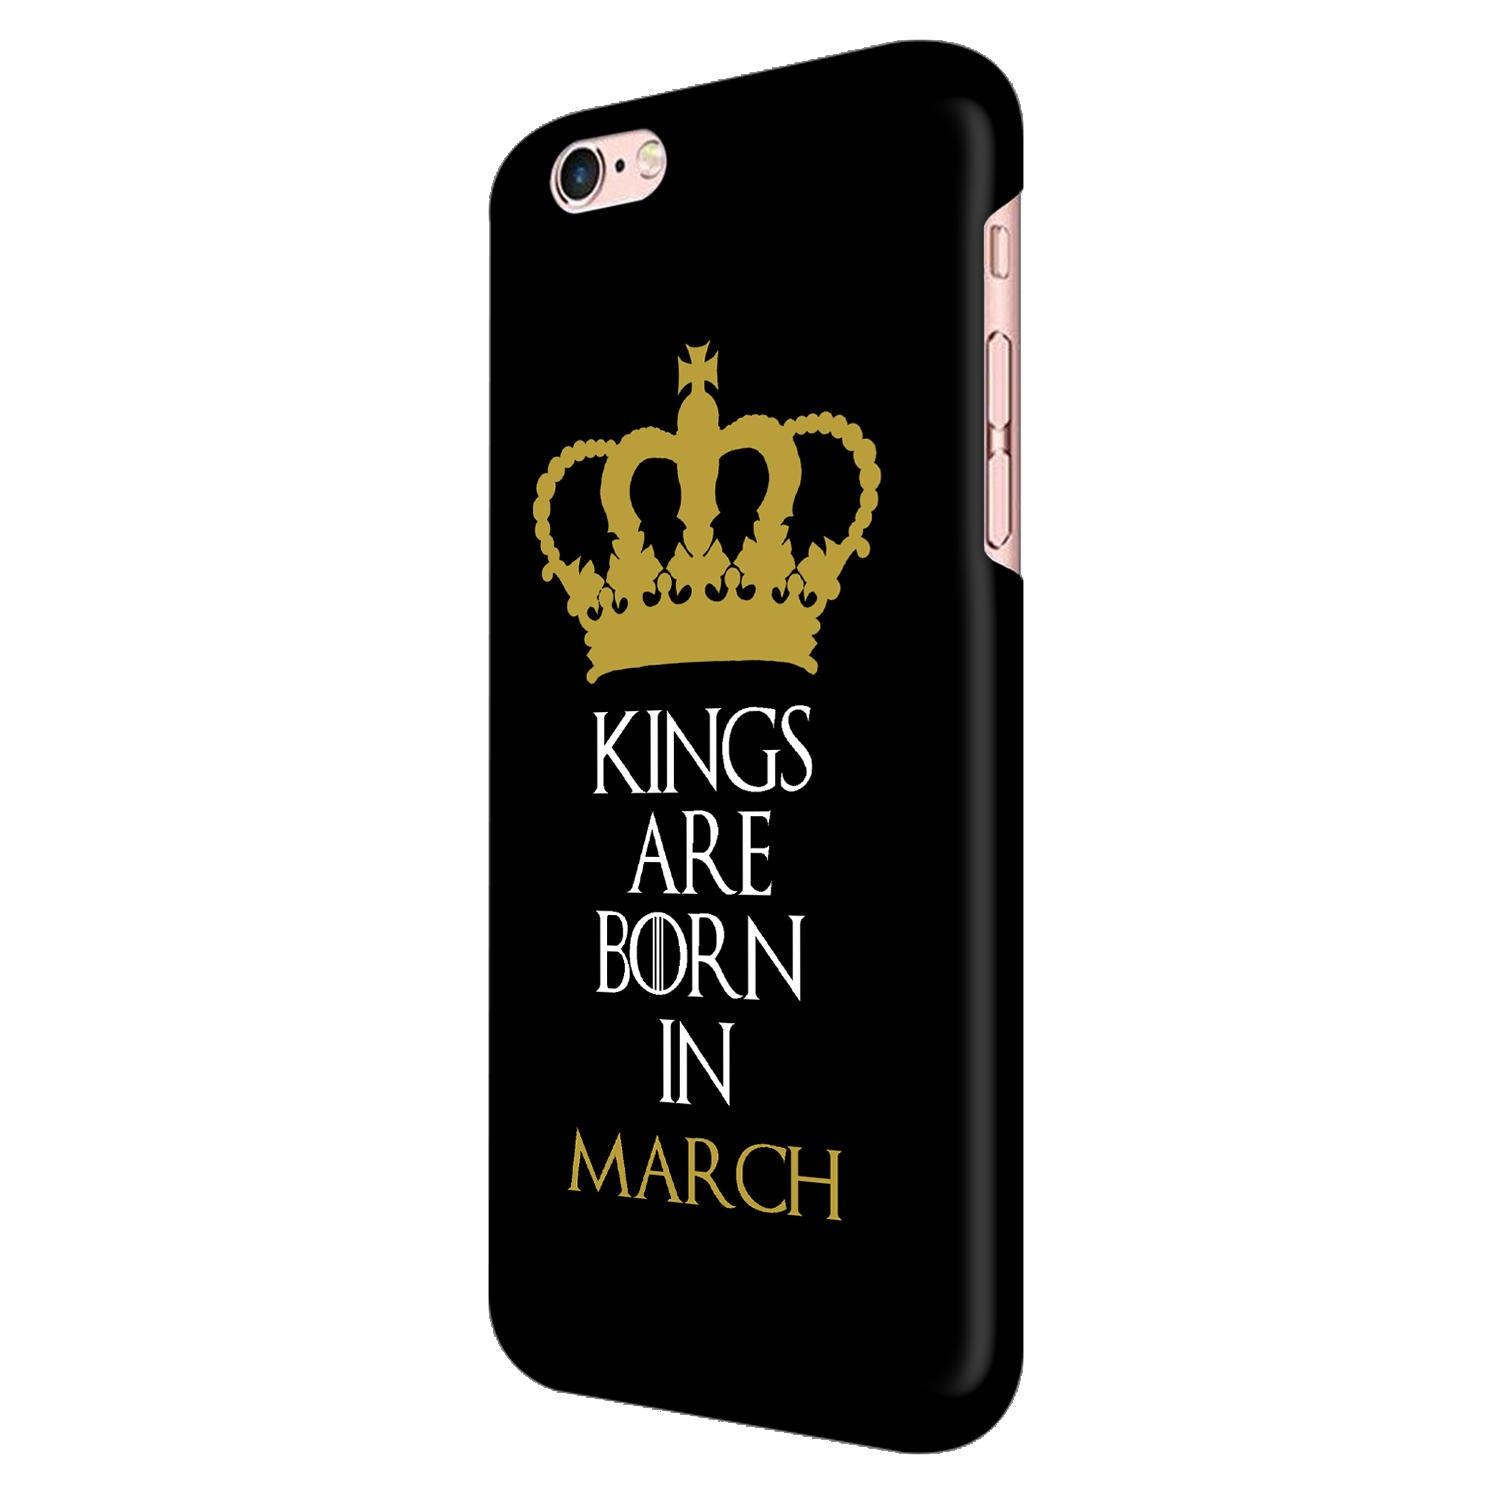 Kings March iPhone 6 Mobile Cover Case - MADANYU